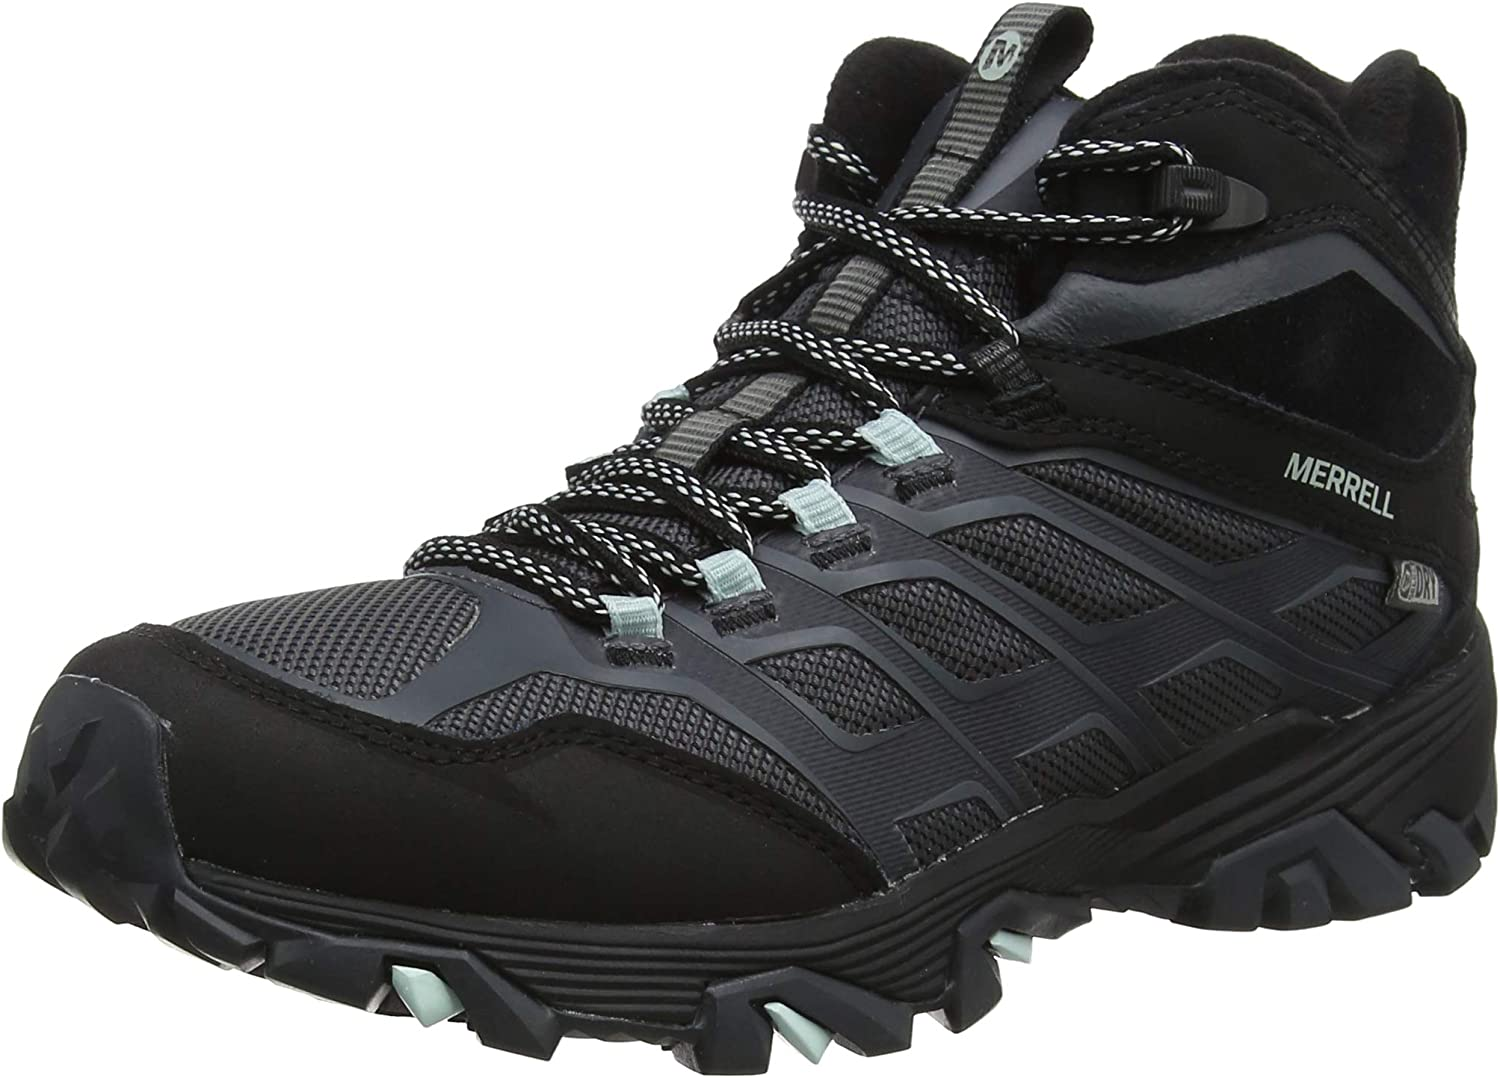 Merrell Womens Moab FST Ice Thermo High Rise Hiking Boots